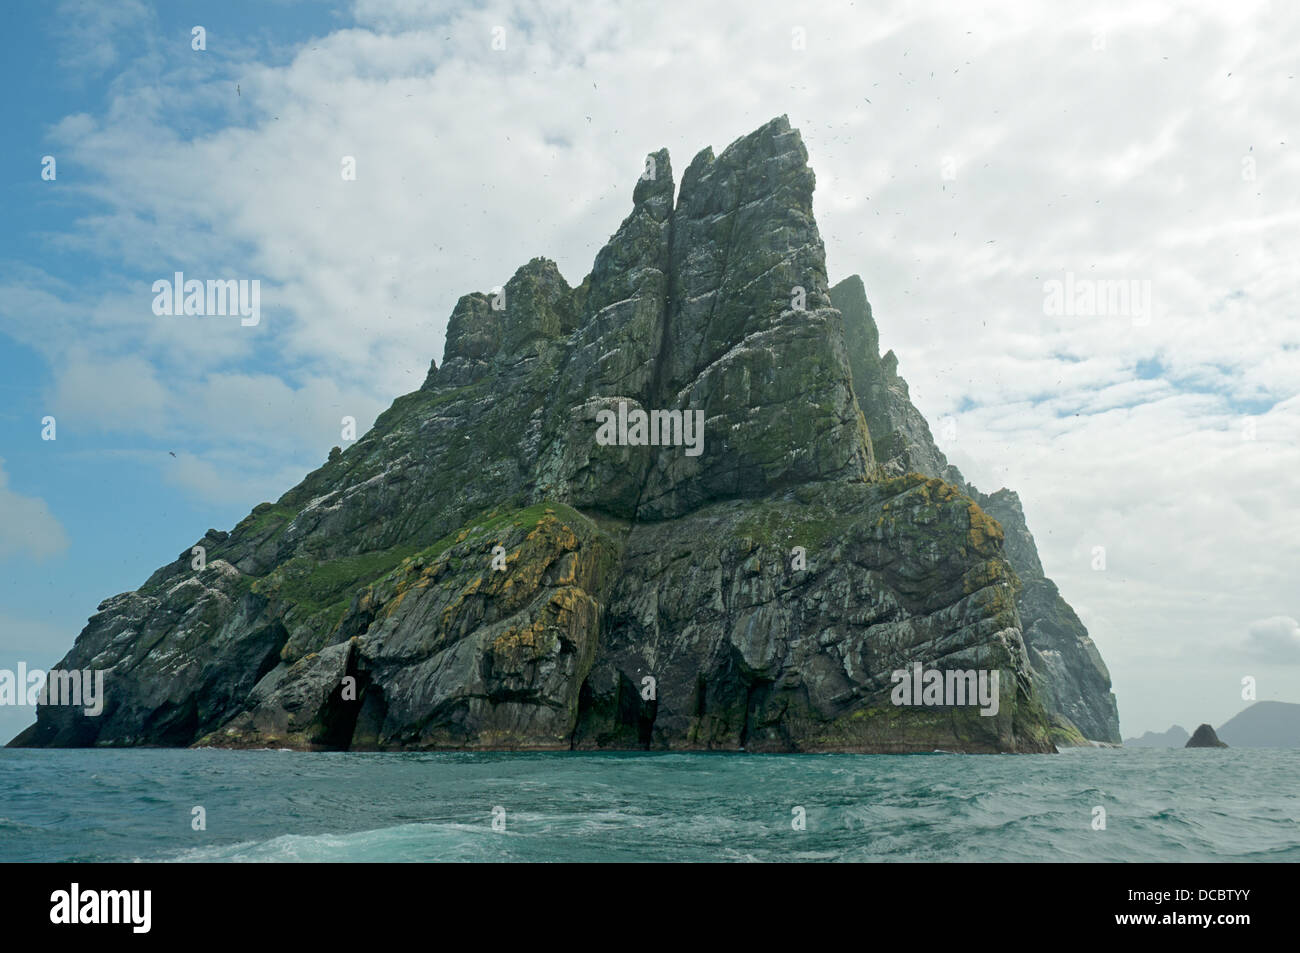 Cliffs on the island of Boreray, St Kilda archipelago, Outer Hebrides, Scotland, UK - Stock Image